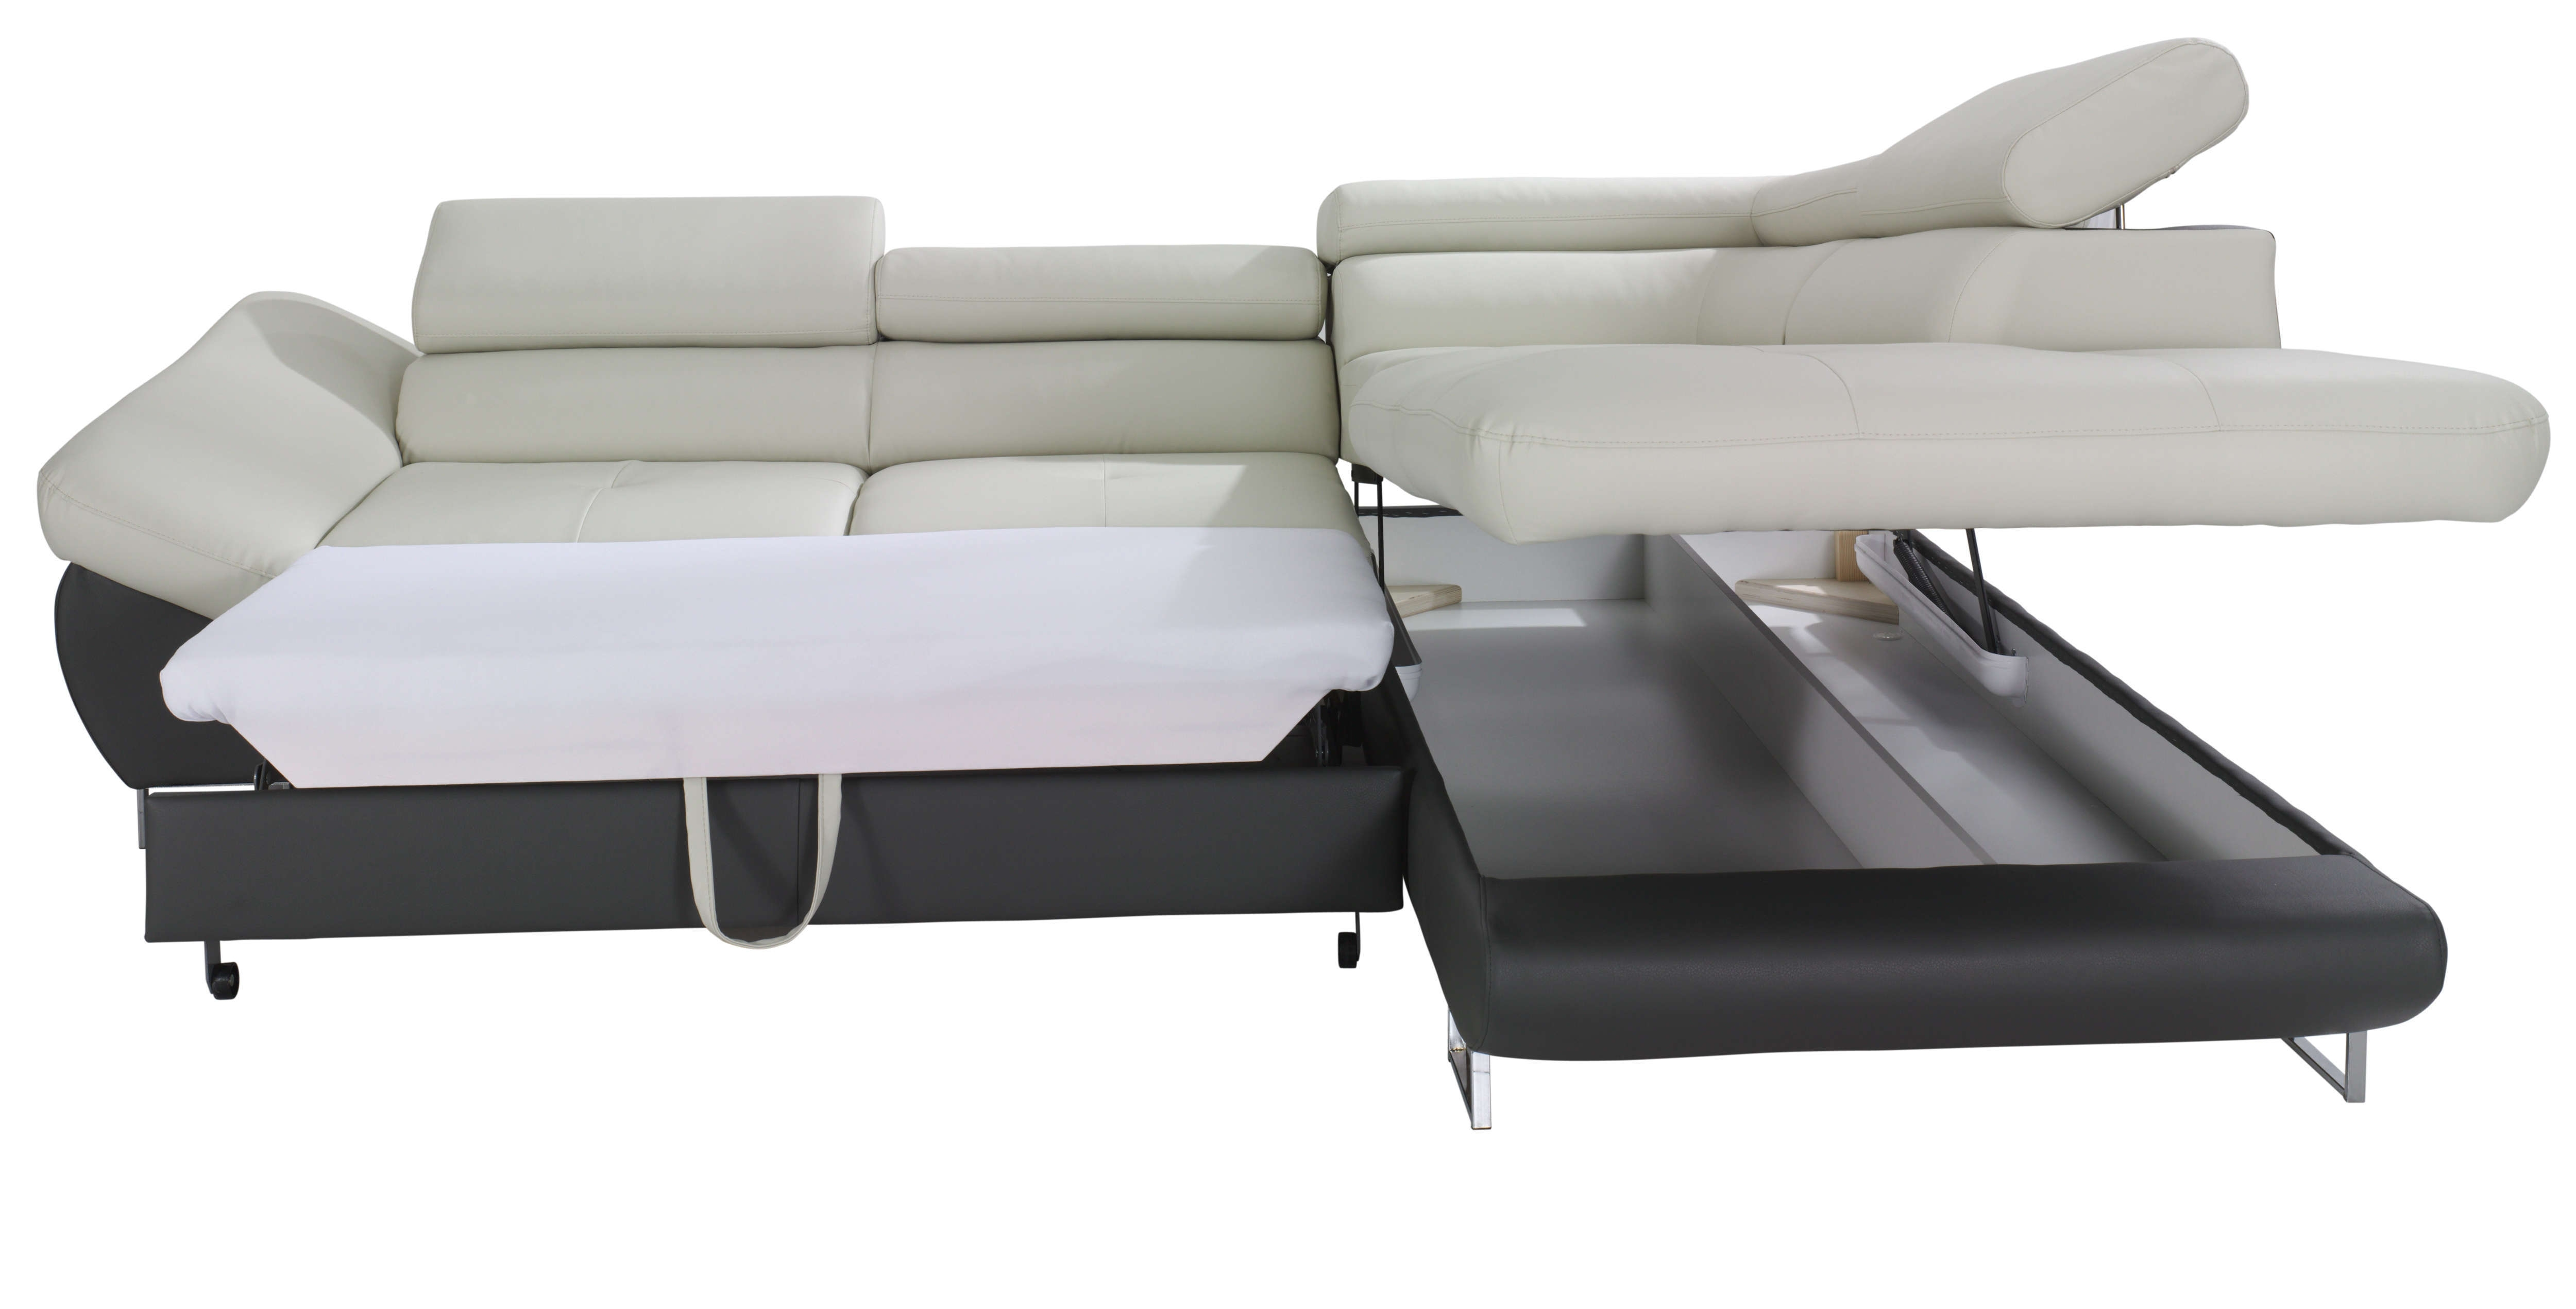 Well Known Vancouver Bc Sectional Sofas With Regard To Furniture : Youth Recliner Large Sectional Sofas With Ottoman (View 17 of 20)